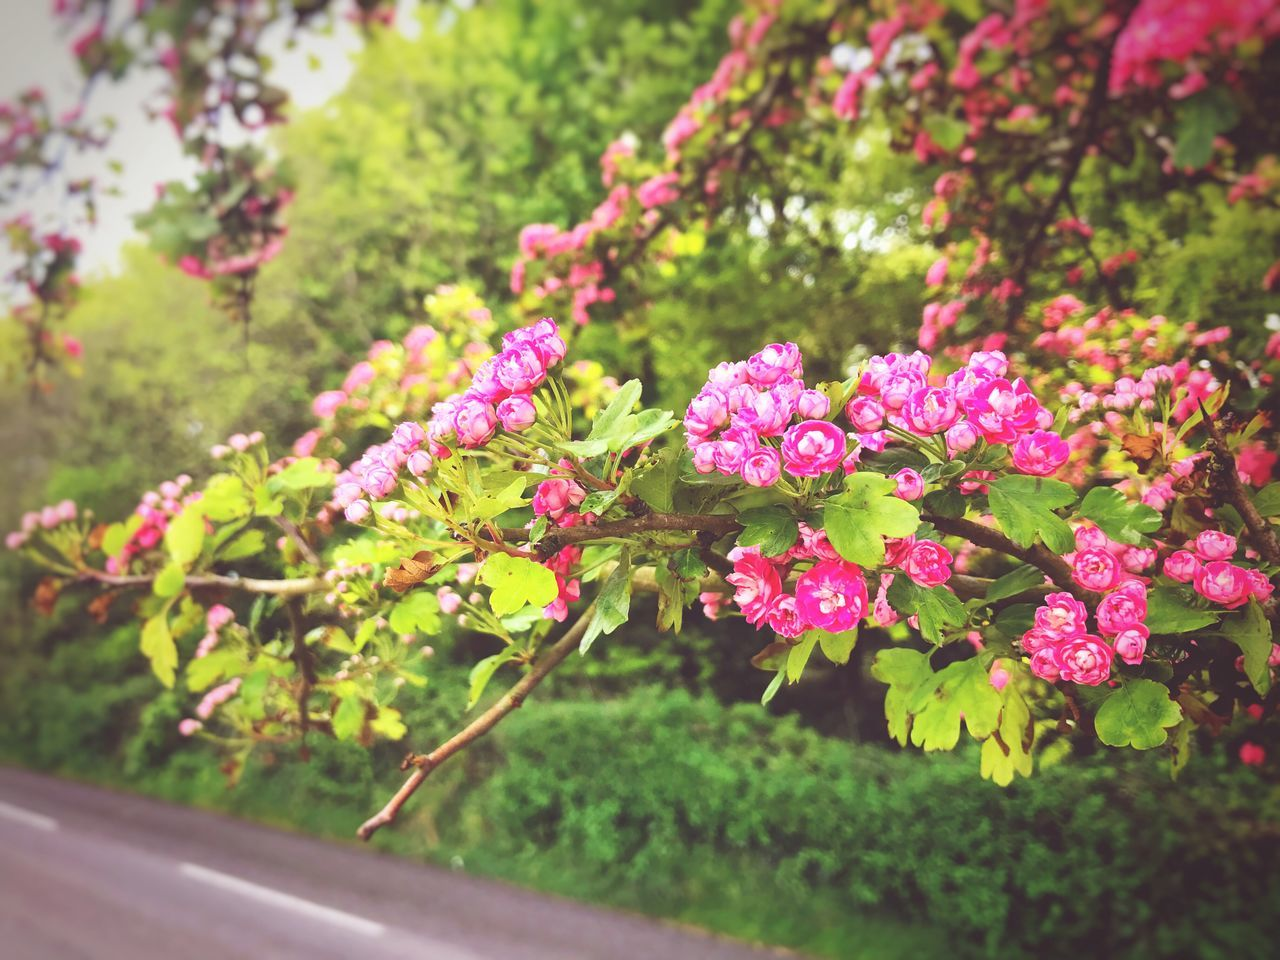 Flower Growth Pink Color Nature Plant Beauty In Nature Fragility No People Day Freshness Petal Outdoors Green Color Leaf Springtime Close-up Flower Head Blooming Ireland Hawthorn Hawthorn Blossom Hawthorne Tree Hawthorn In Flower Crataegus Crataegus Flower